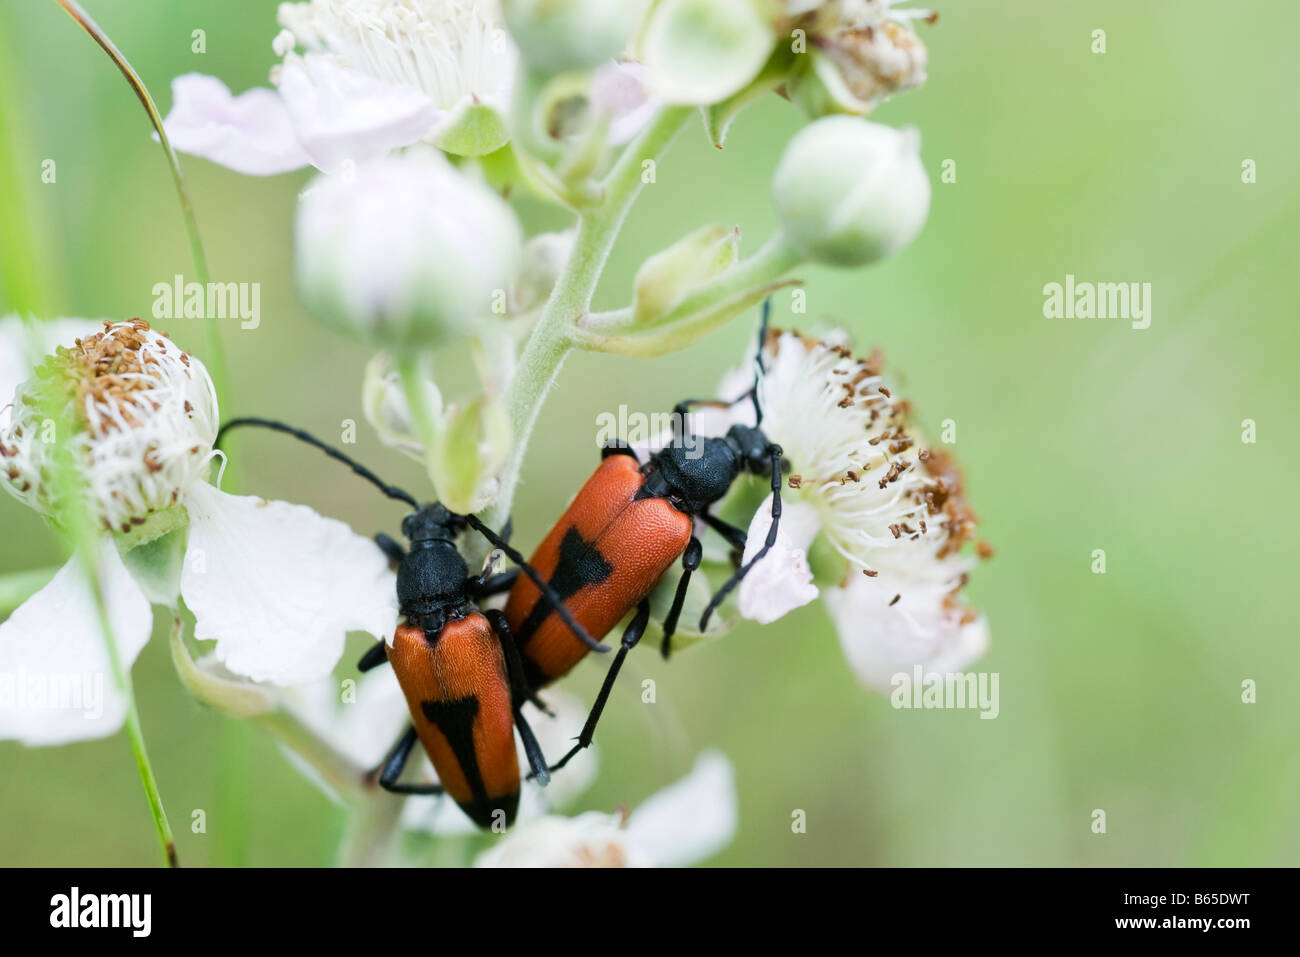 Shield bugs crawling on flowering plant - Stock Image